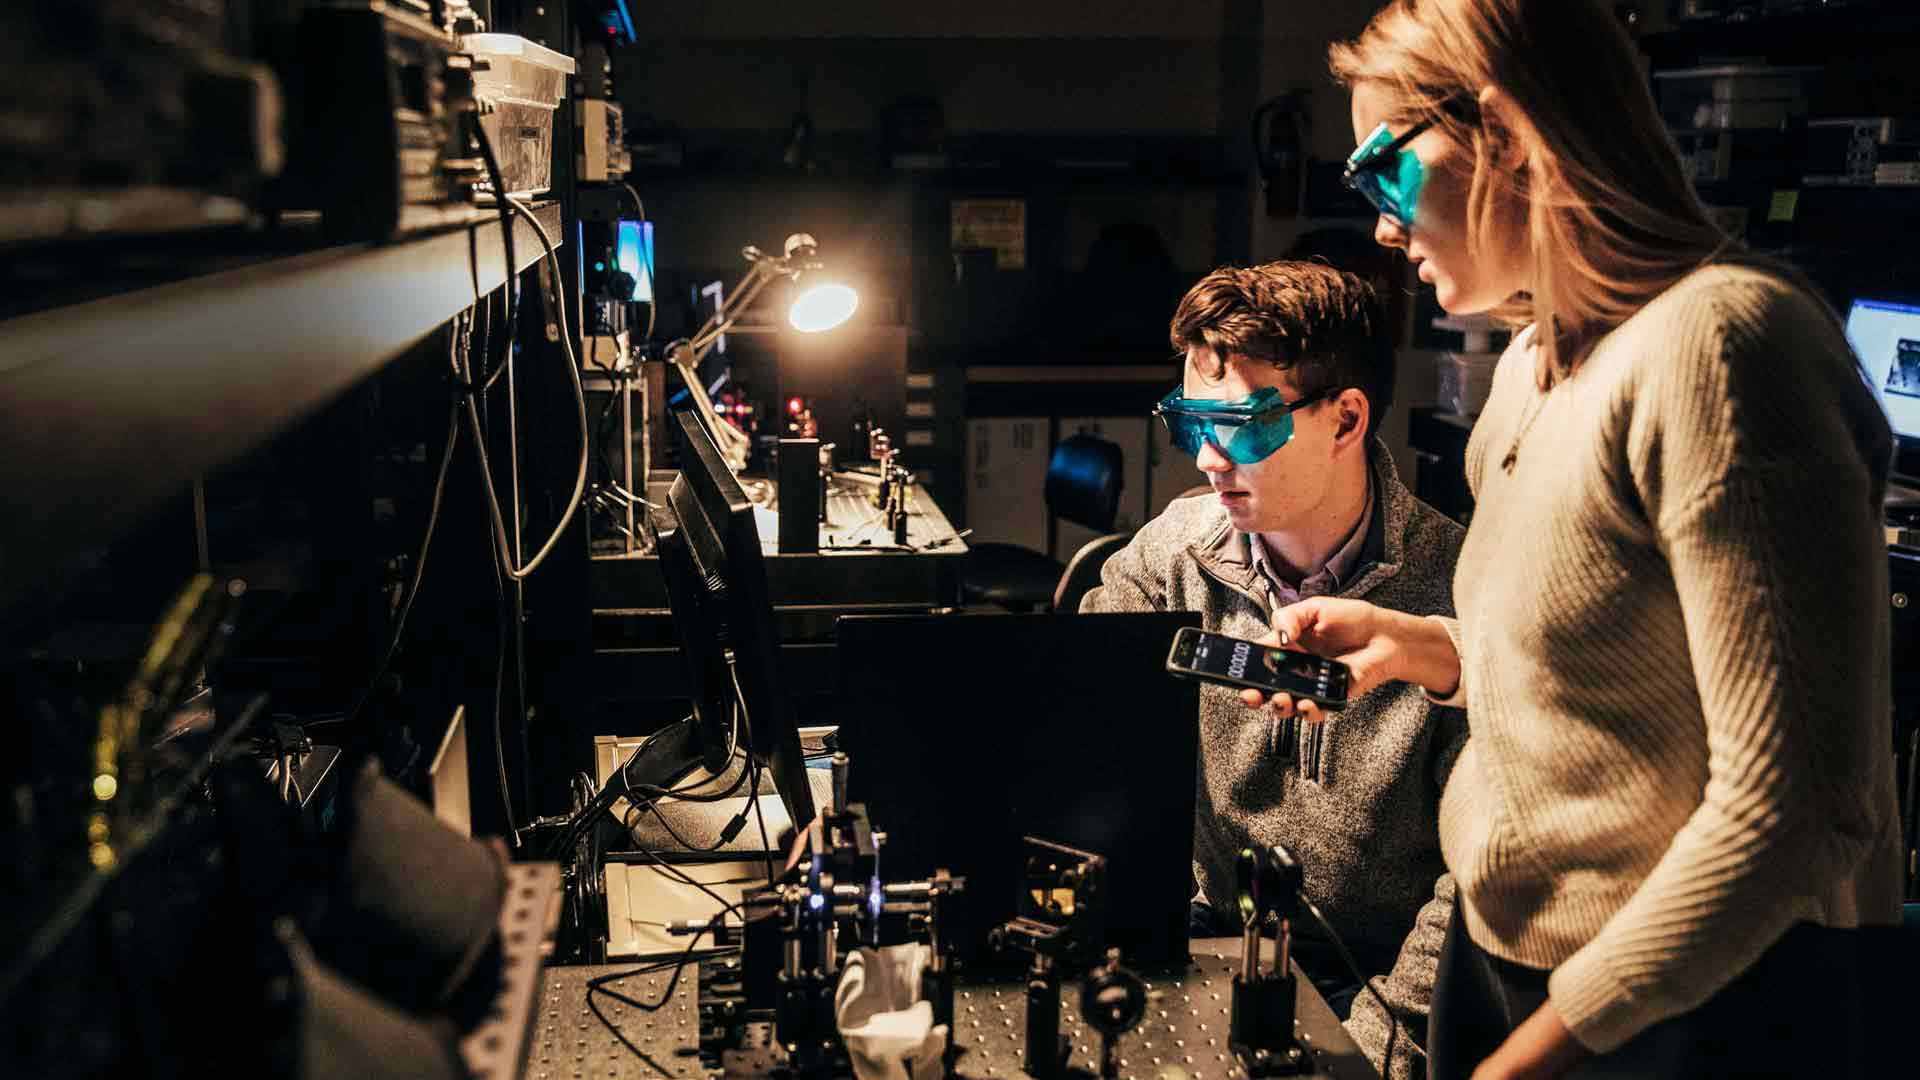 Two students work on a project involving lasers in a lab.